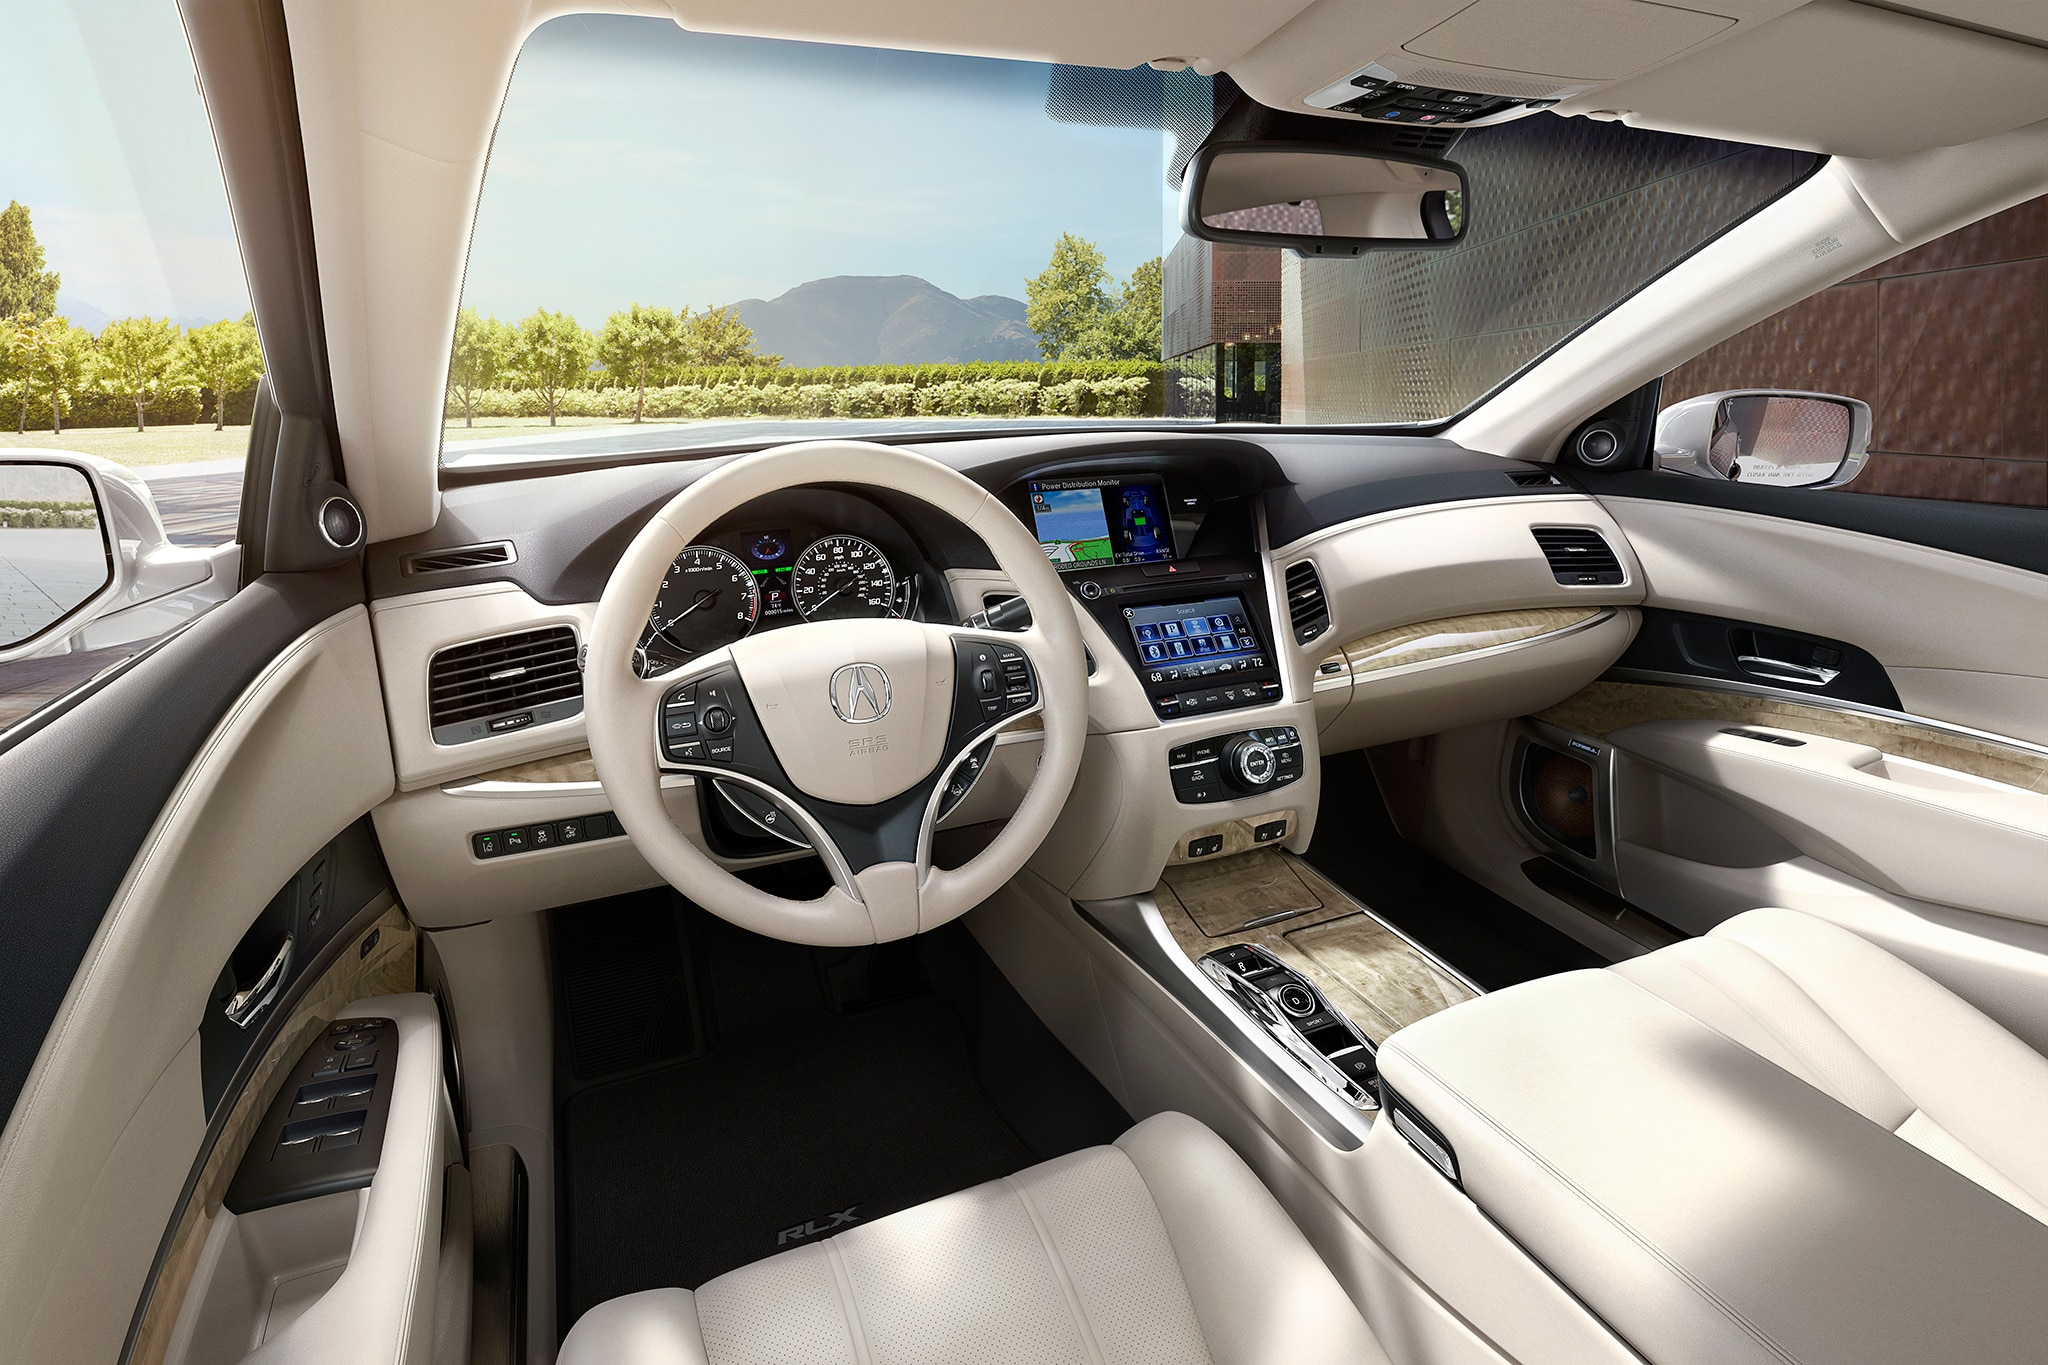 2018 acura mdx interior. delighful mdx acurawatch  throughout 2018 acura mdx interior